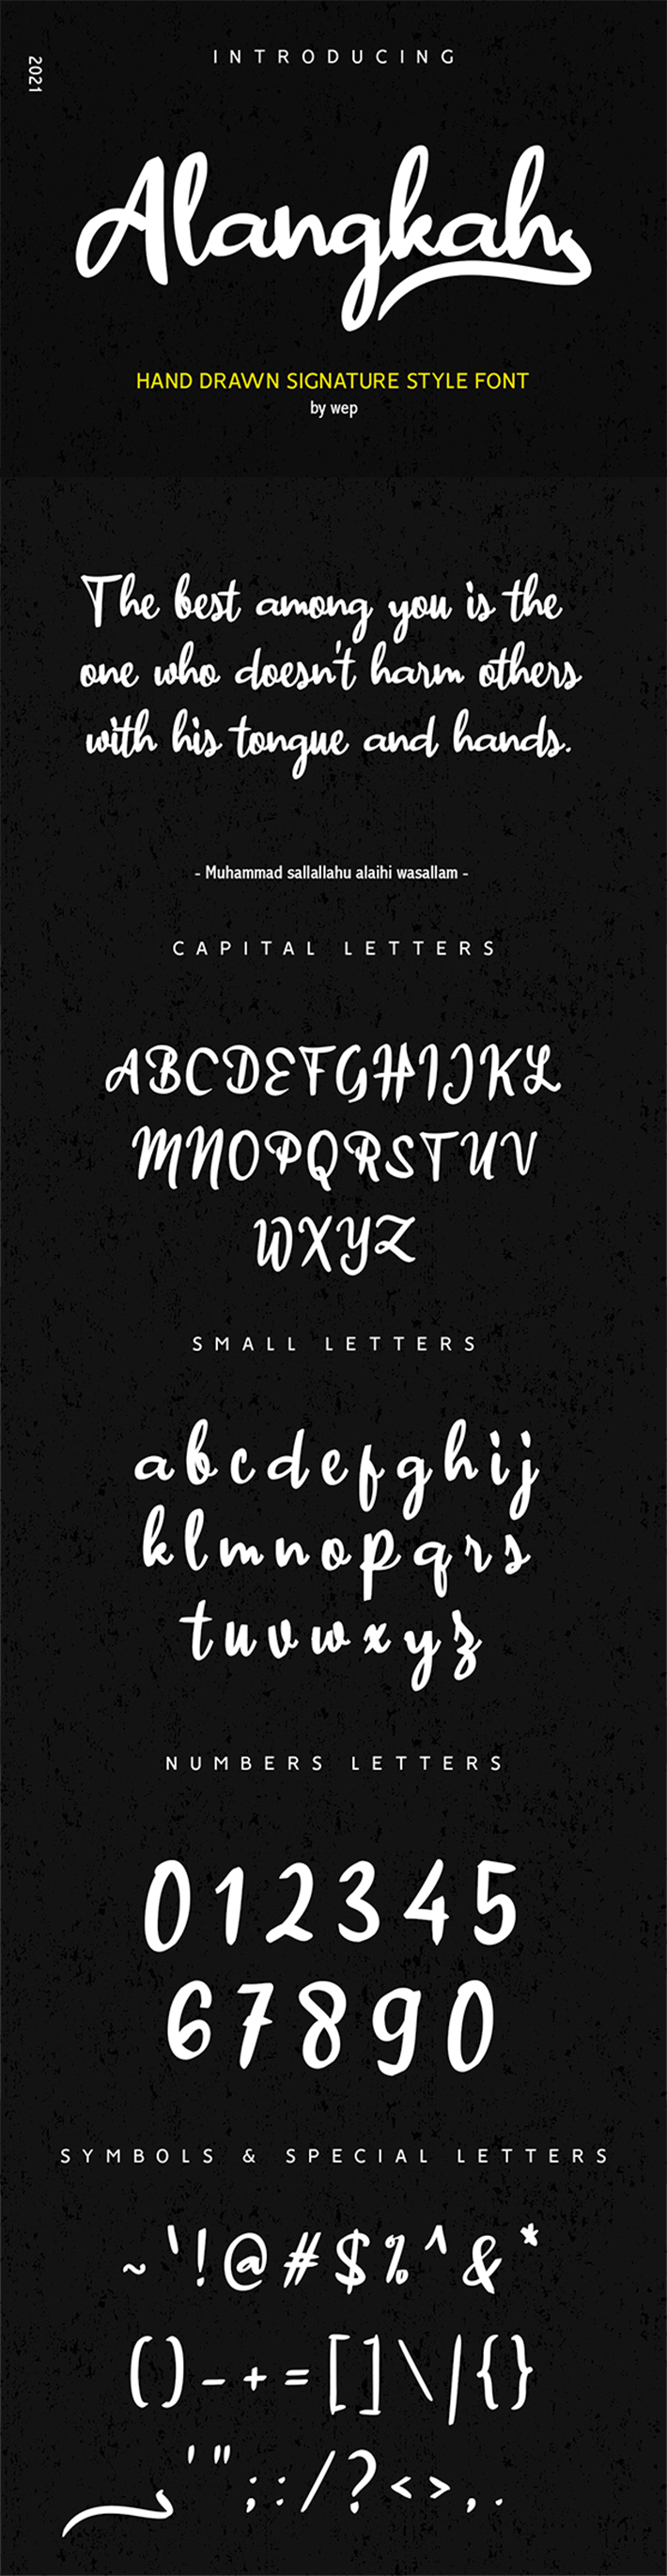 Awesome Hand Drawn Signature Free Font